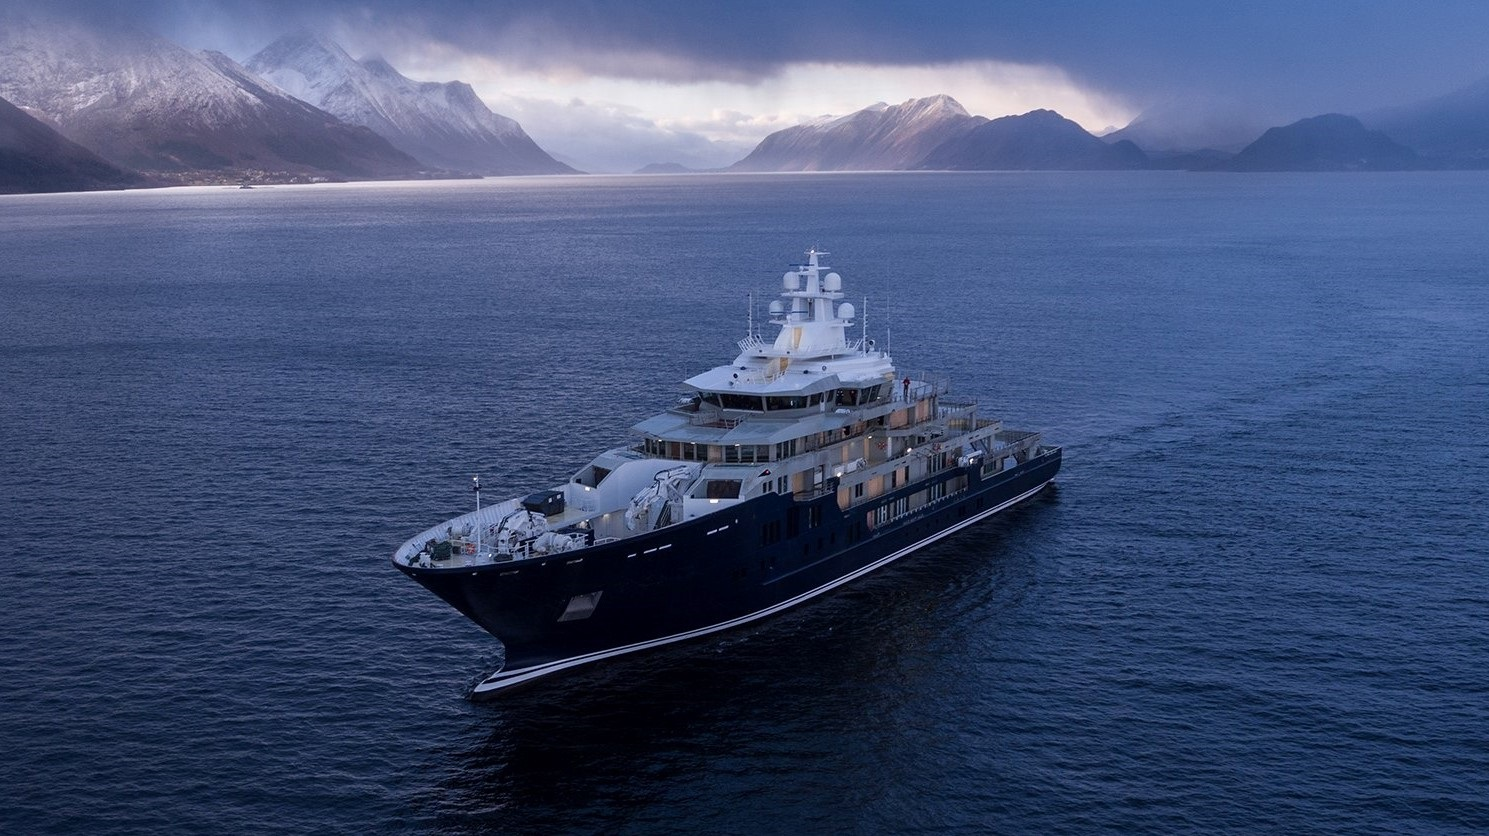 One of the most spectacular charter explorer yachts - ULYSSES